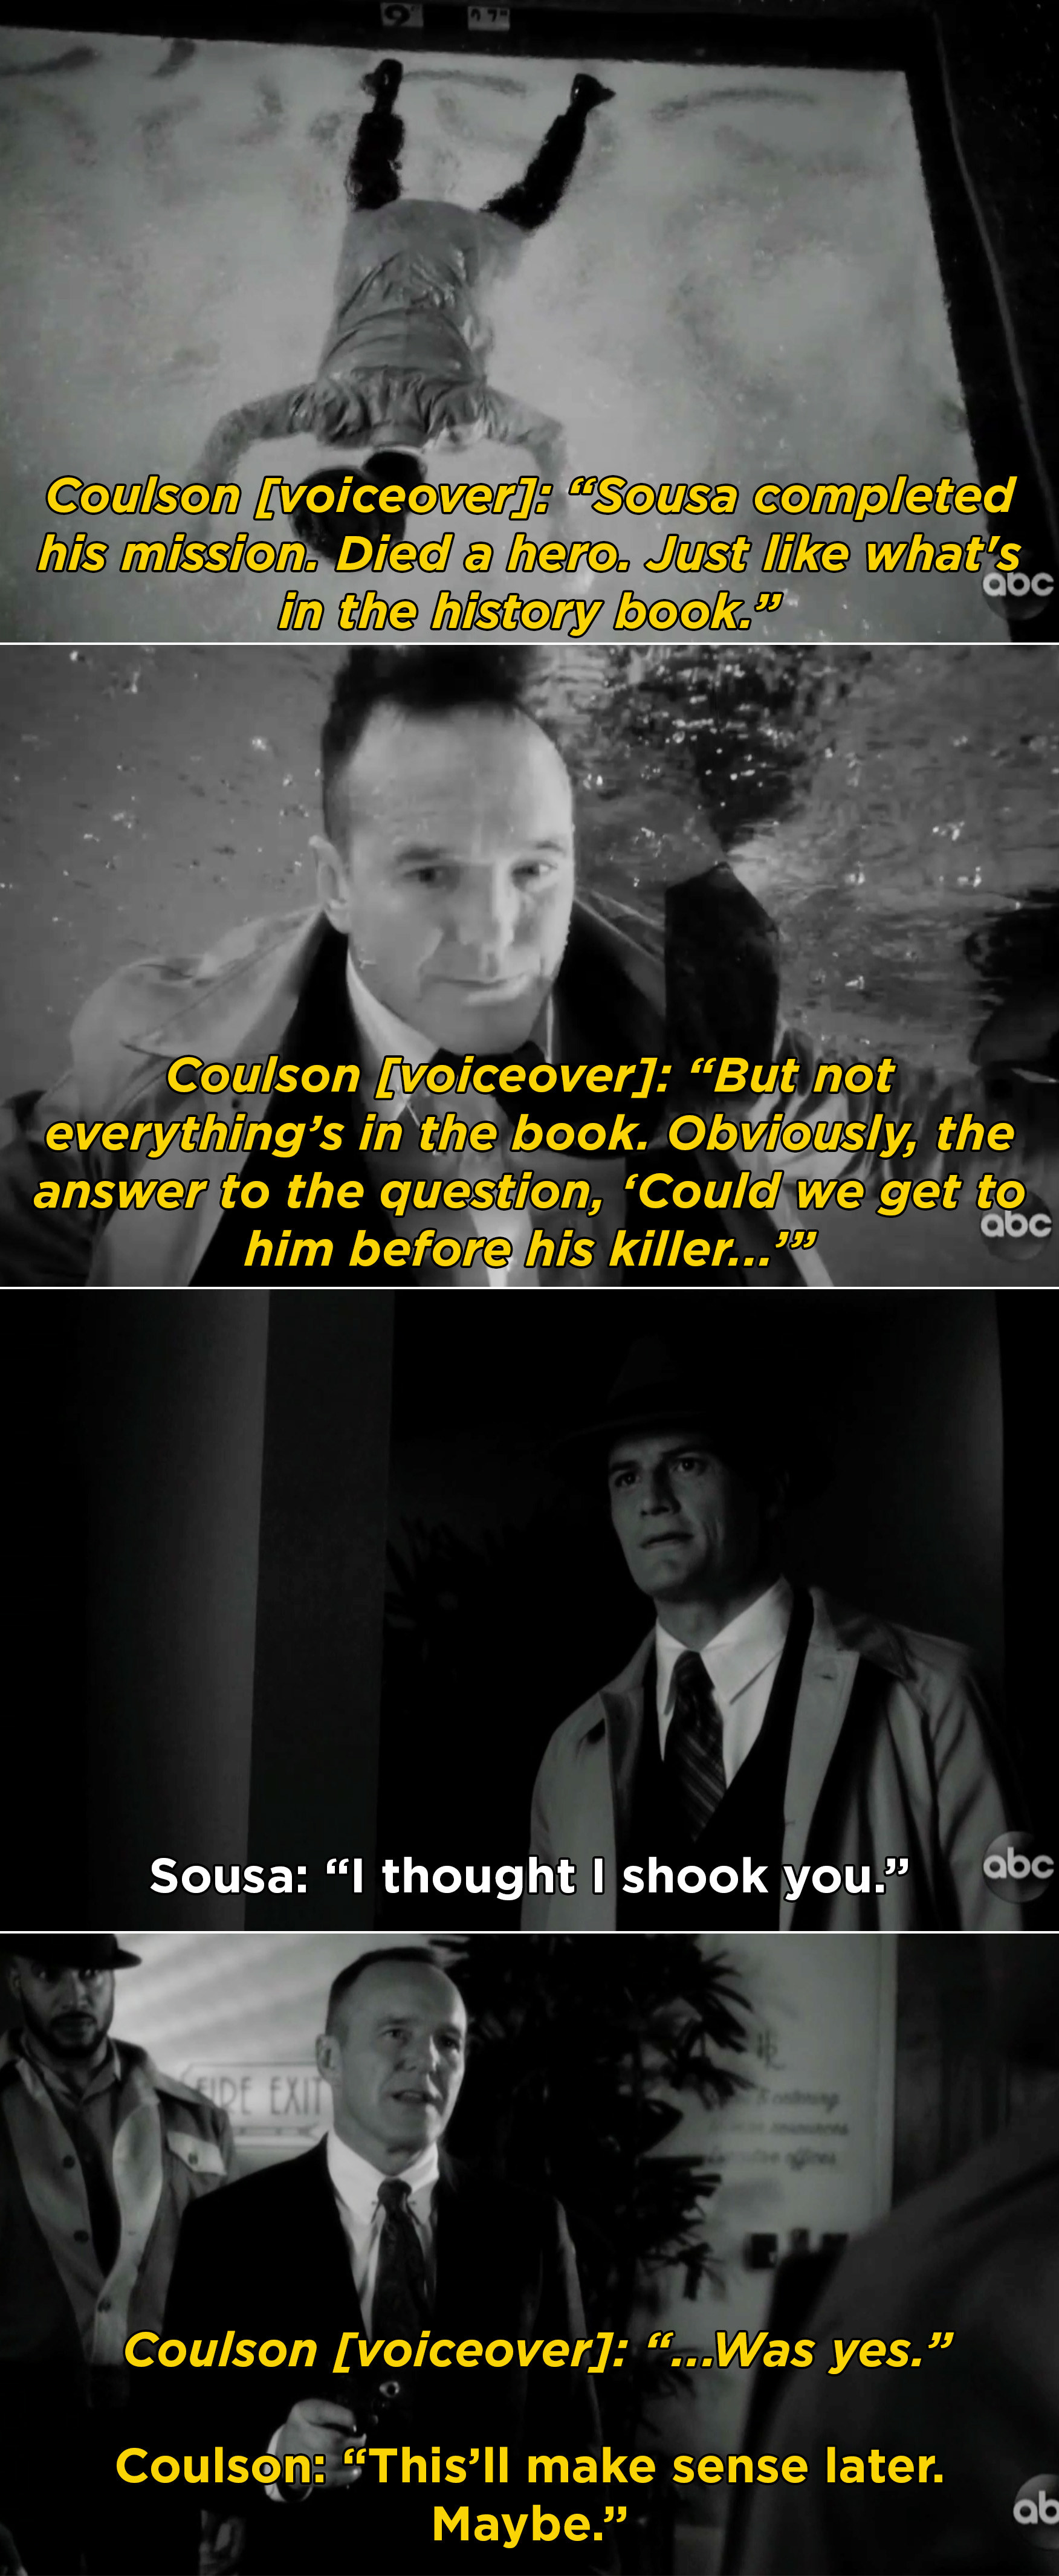 Coulson switches places with Sousa and meeting him the hallway before he was killed